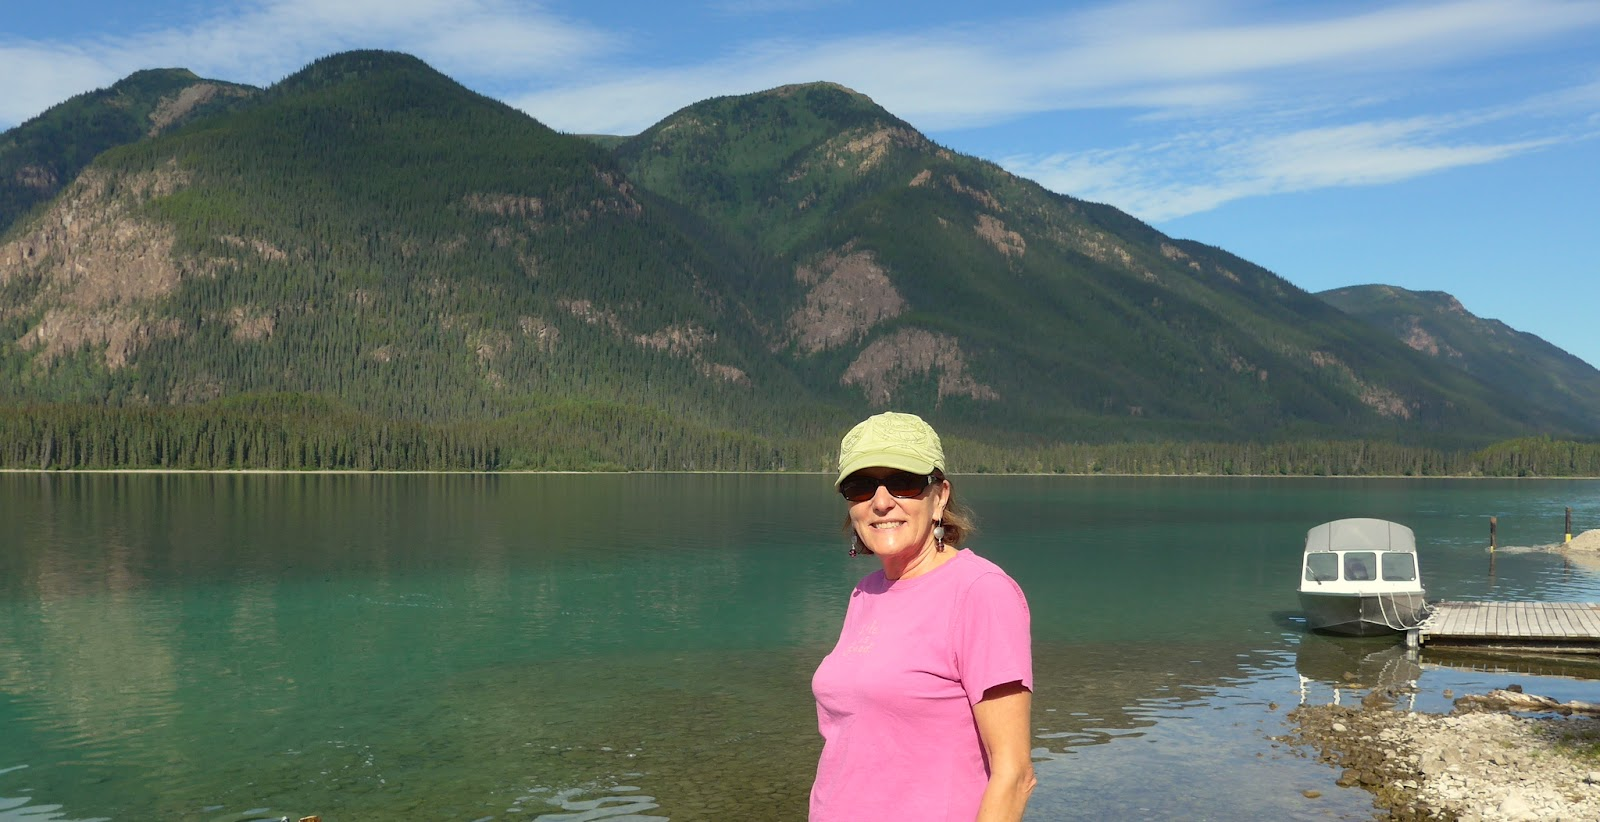 Liz by the shore of Muncho Lake